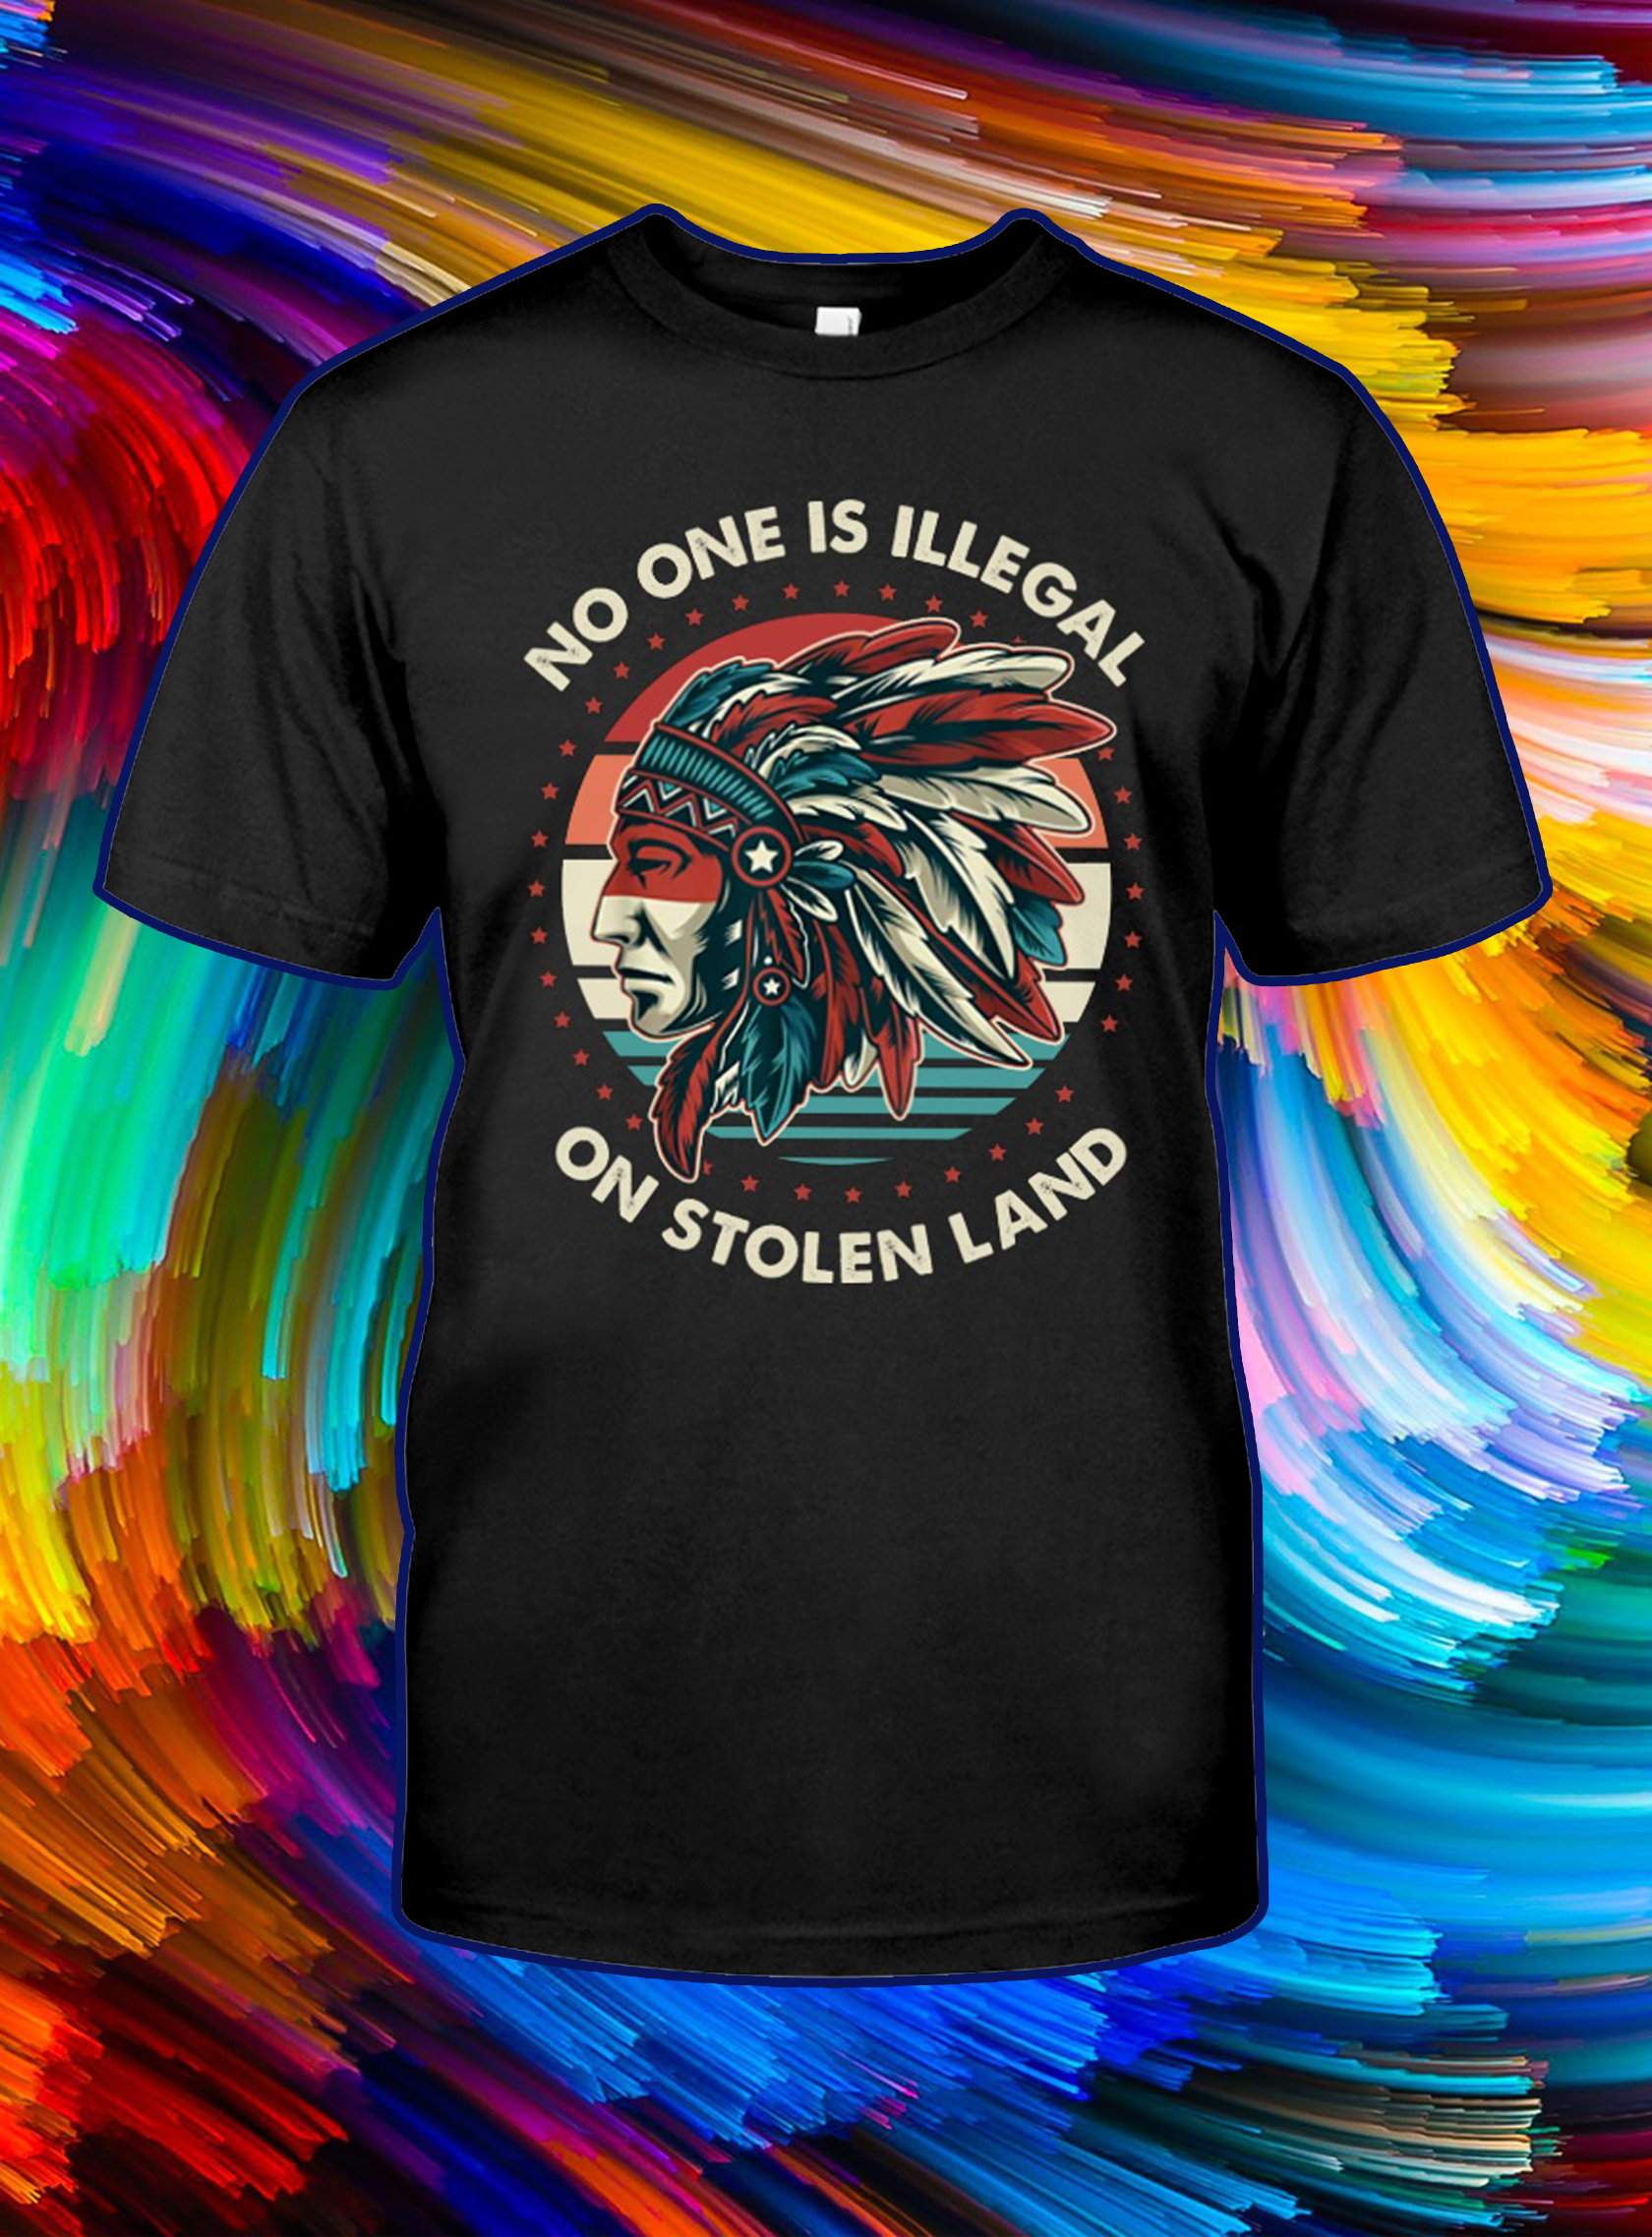 Native No one is illegal on stolen land vintage shirt